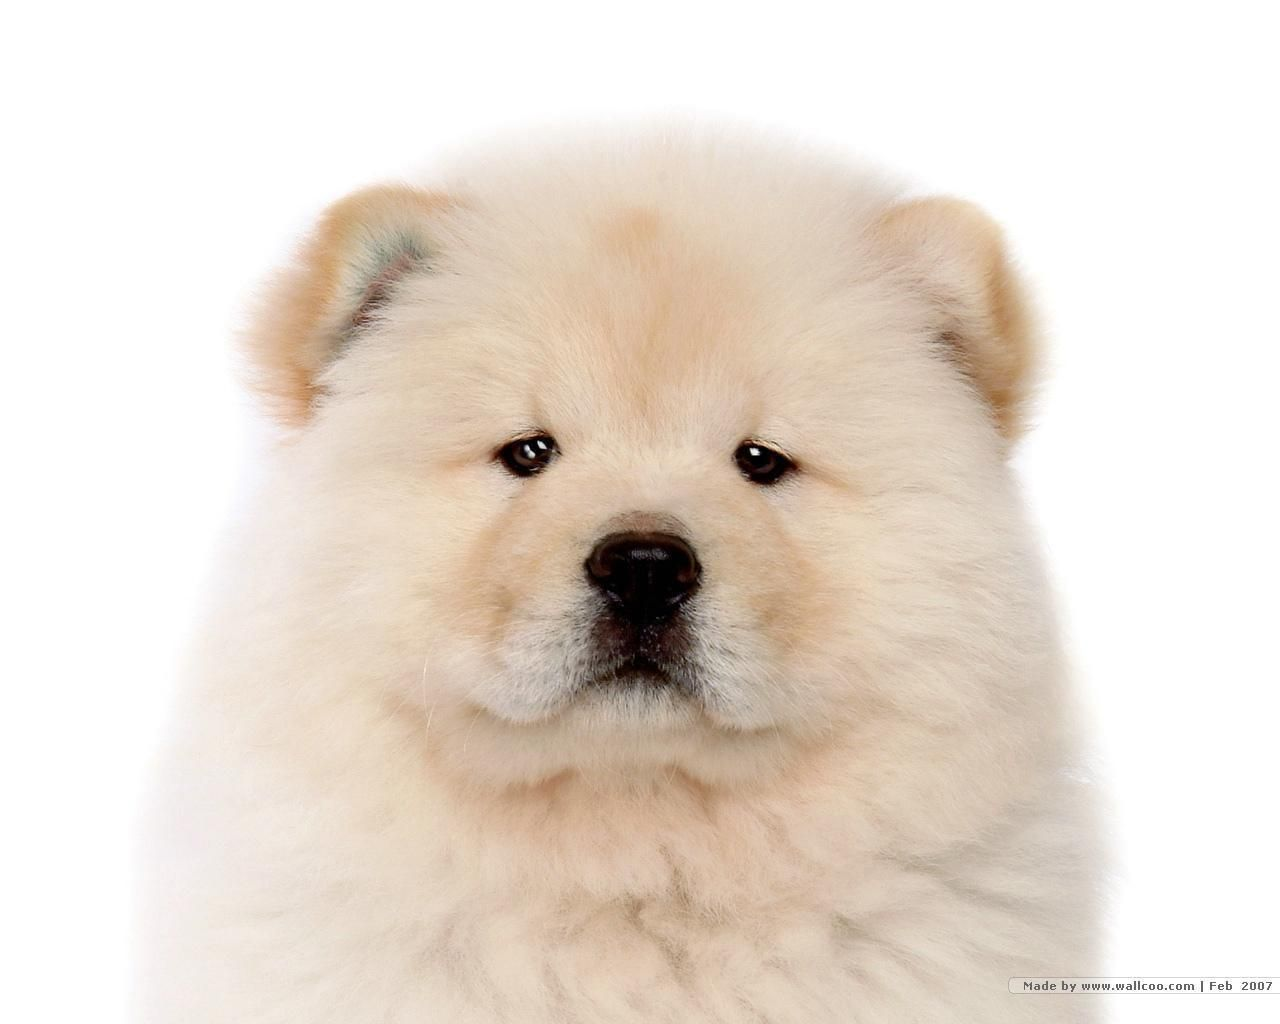 Chow Chow Puppy Cute But He Looks A Little Unhappy With Images